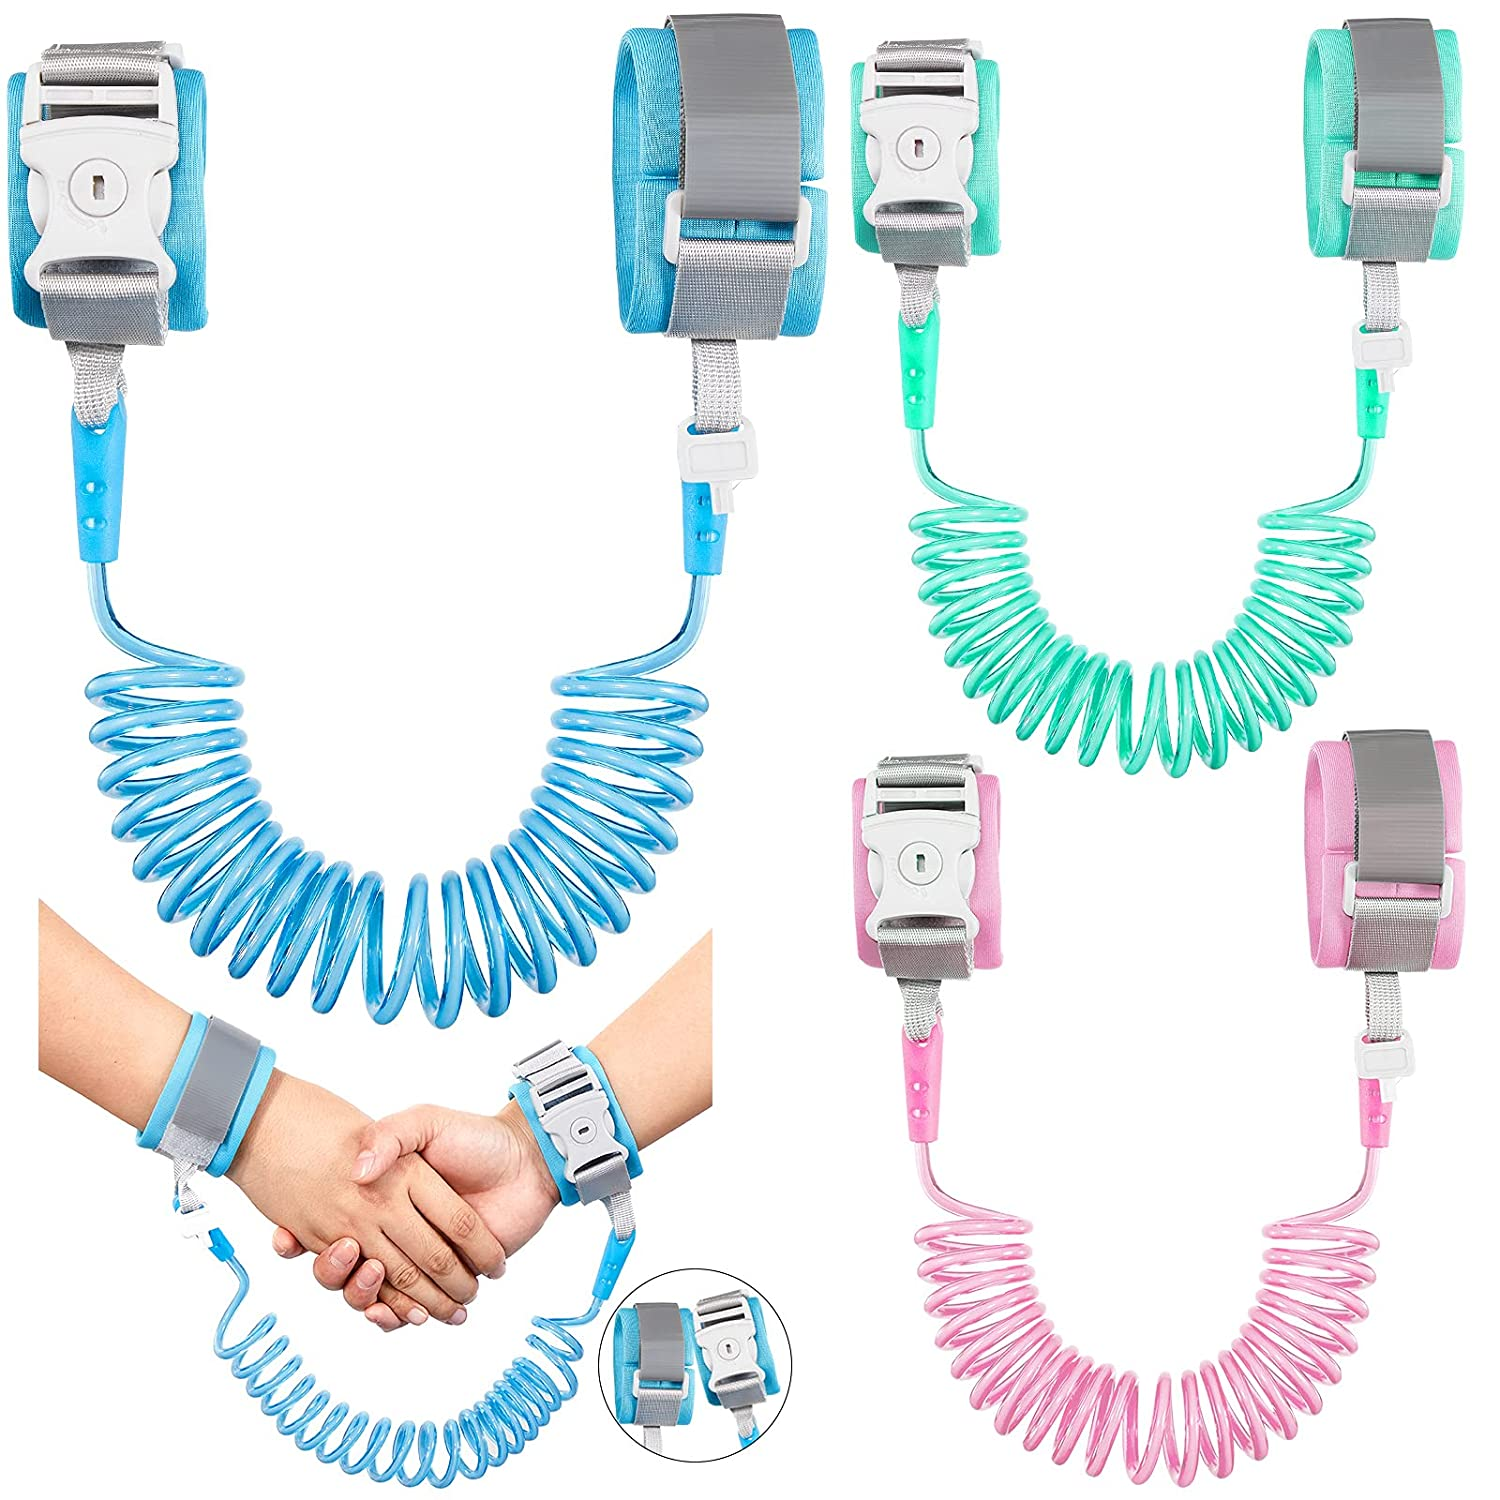 3 Pieces Toddler Leash Kid Leash Anti Lost Wrist Leash Adjustable Breathable Wrist Link with Key Lock Baby Leash with Child Safety Wristband Rope Safety Belt Locks for Kids Baby Toddler Child, 3 Color